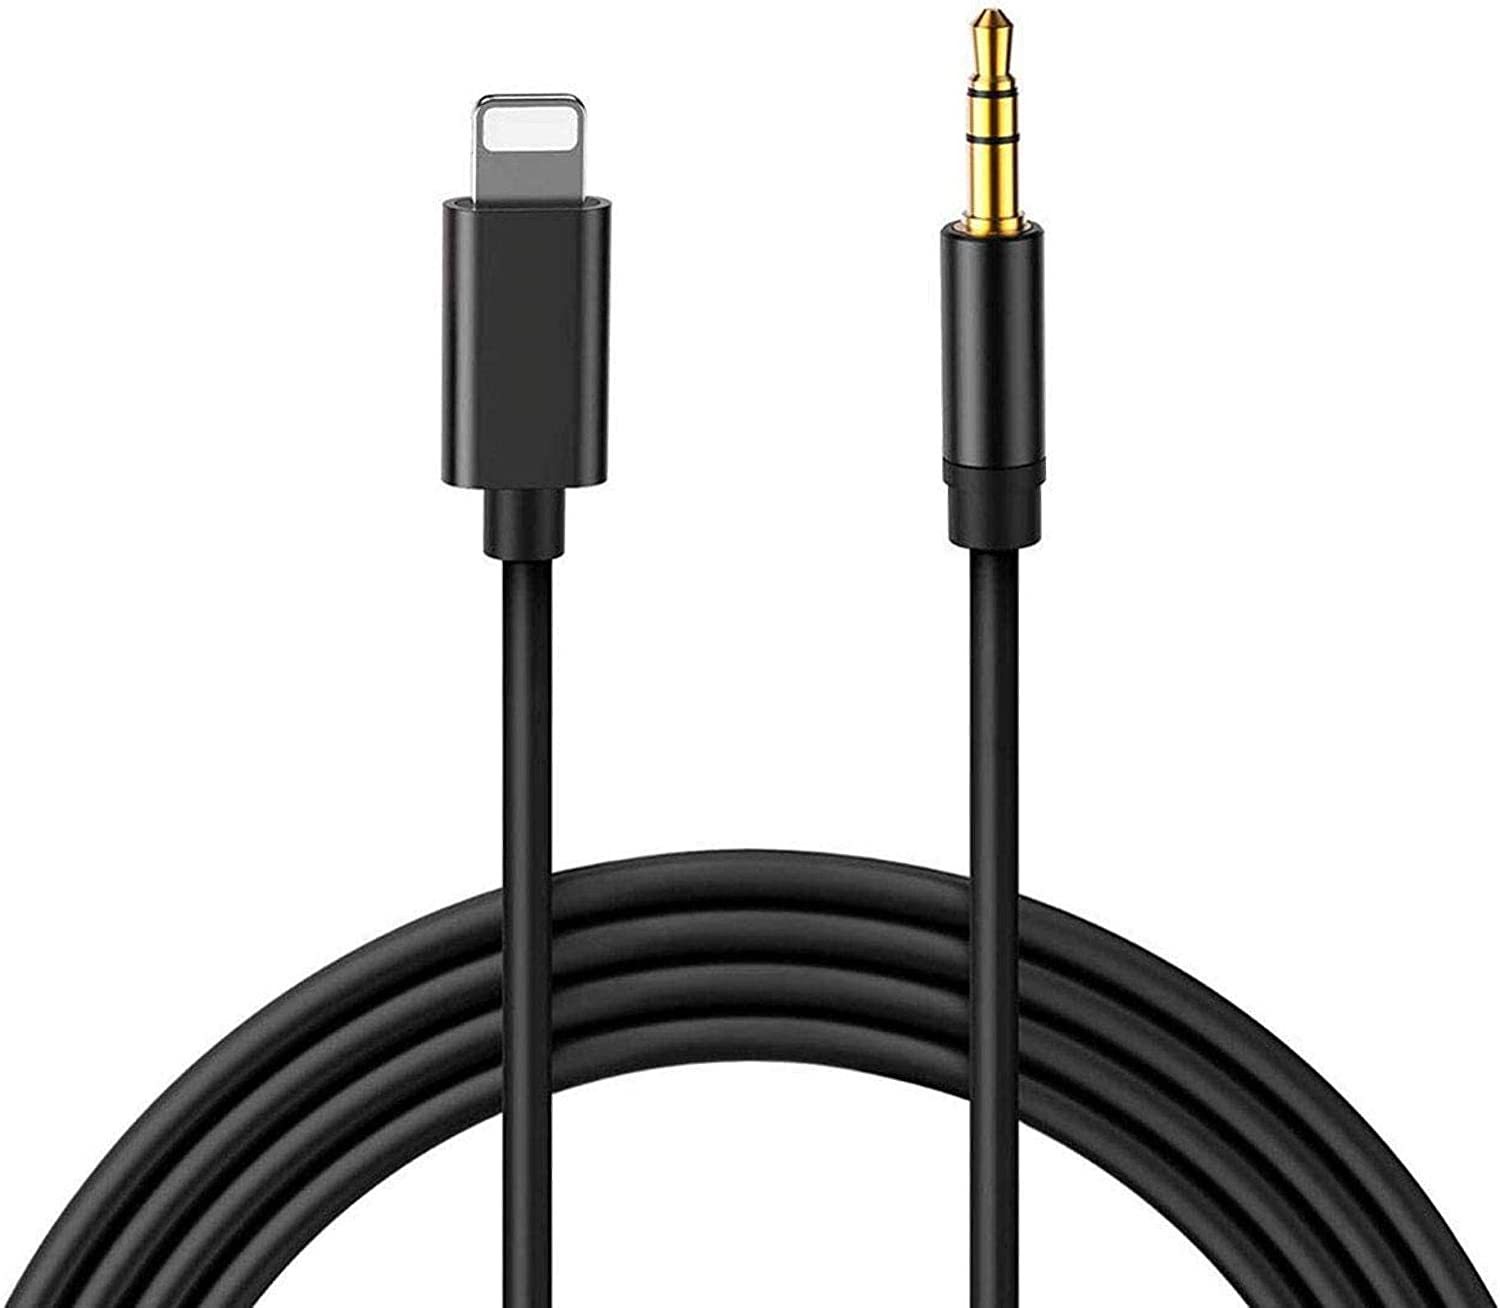 [Apple MFi Certified] Aux Cord for iPhone, Lightning to 3.5mm Stereo Audio Aux Cable for Car Compatible with iPhone 11/11 Pro/XS/XR/X/8/7/SE/iPad to Car/Home Stereo, Speaker, Headphone - 3.3FT, Black